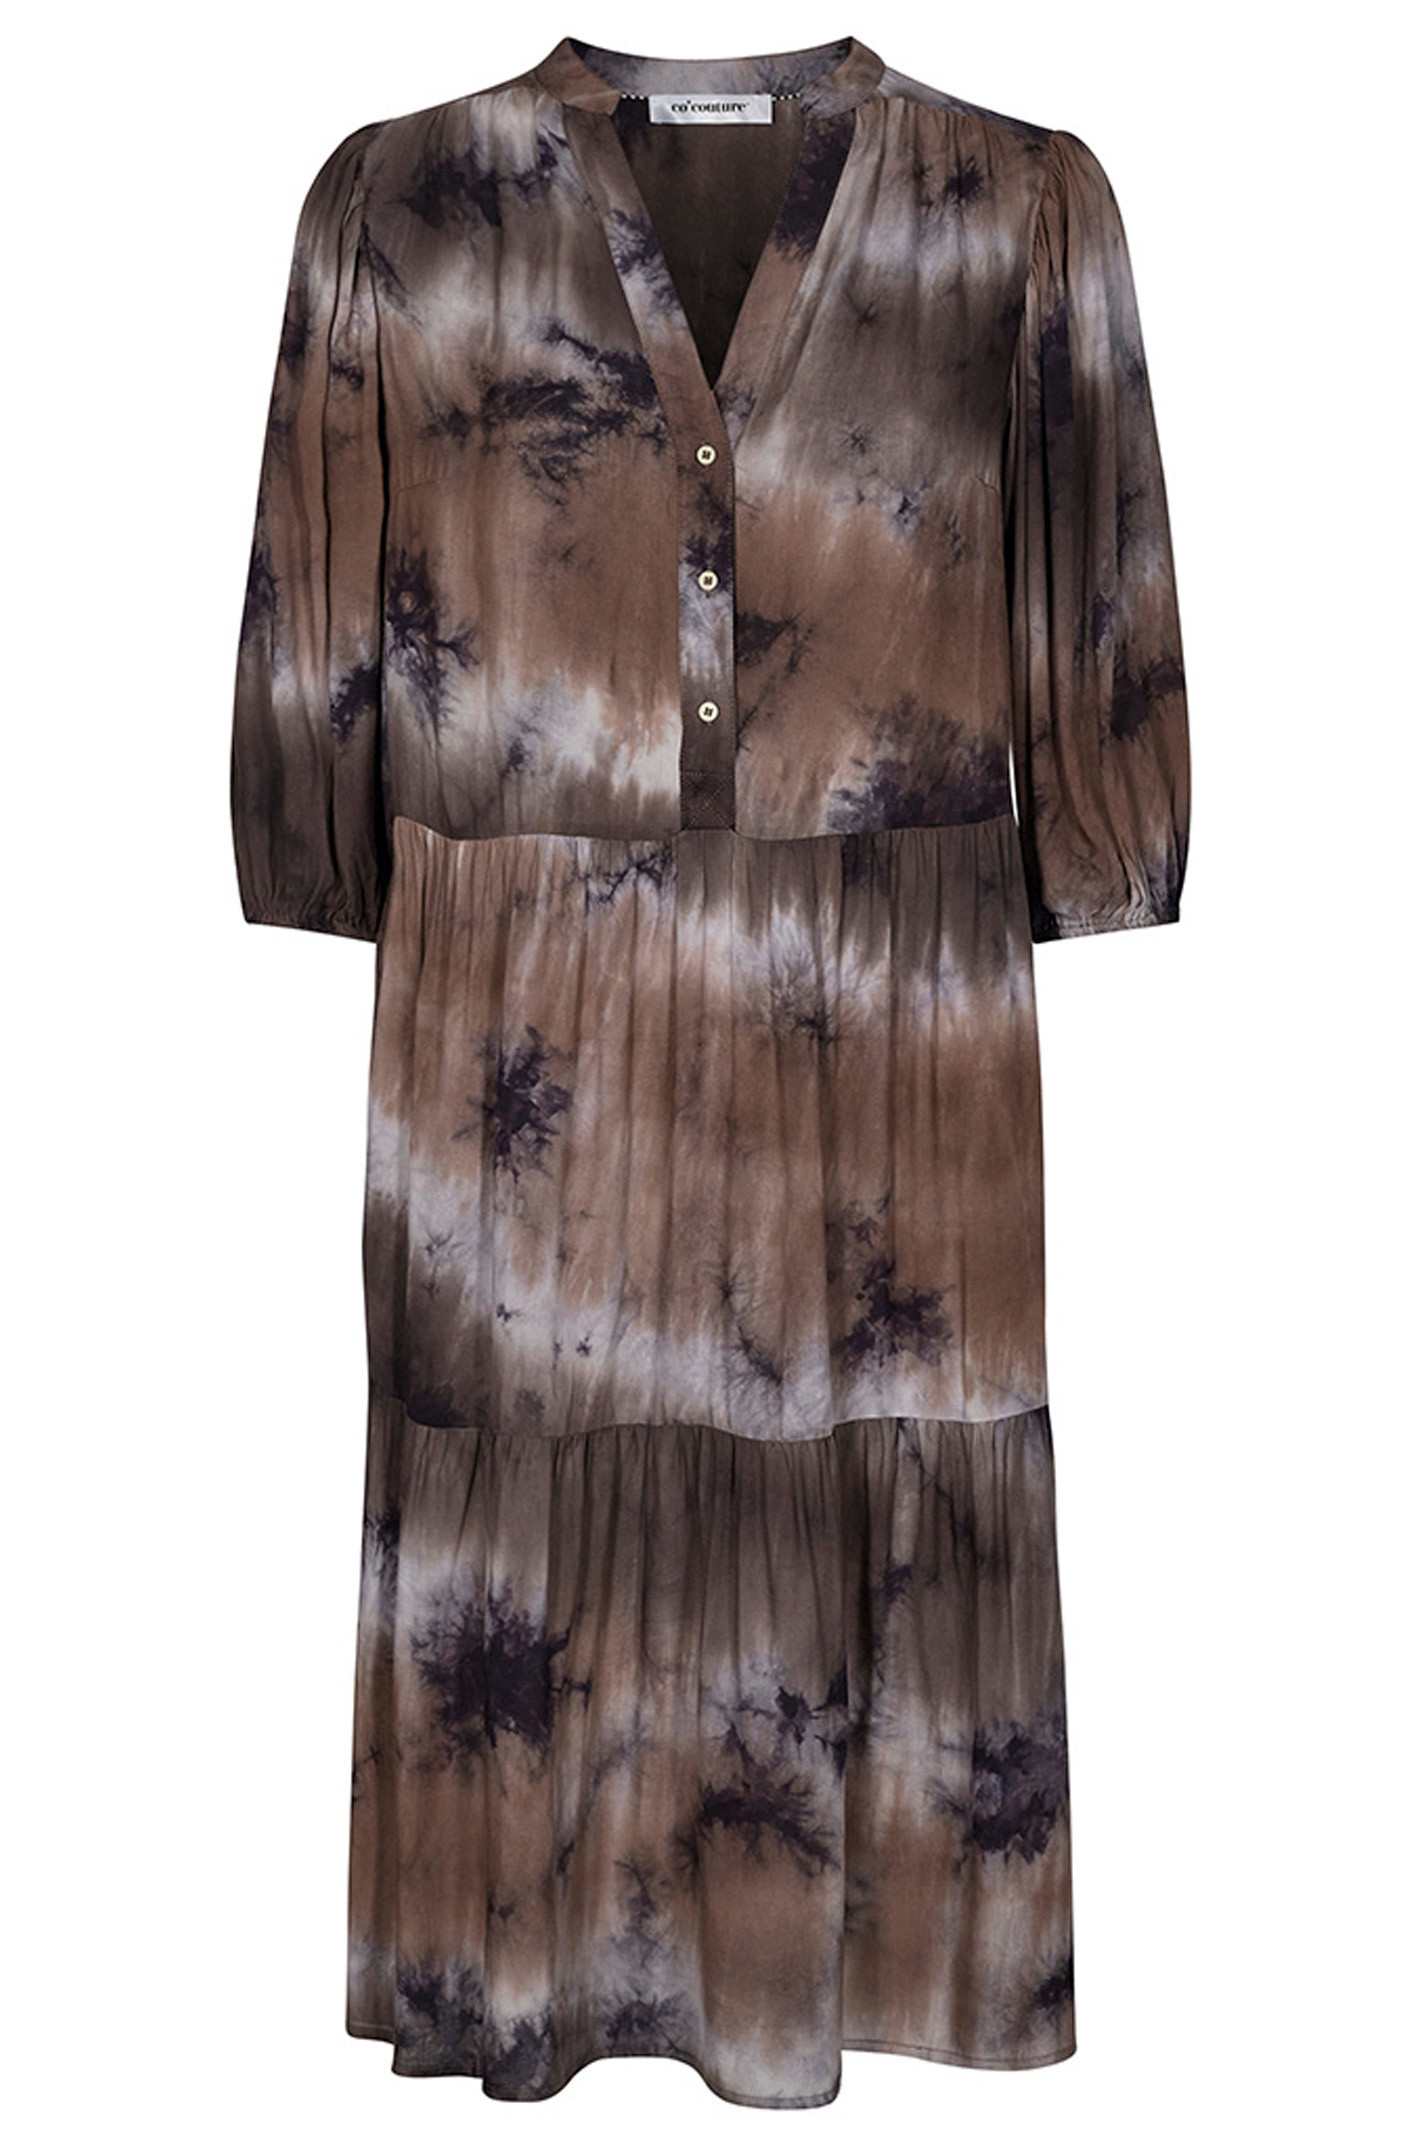 CO'COUTURE CREAM TIE DYE 96169 Mocca